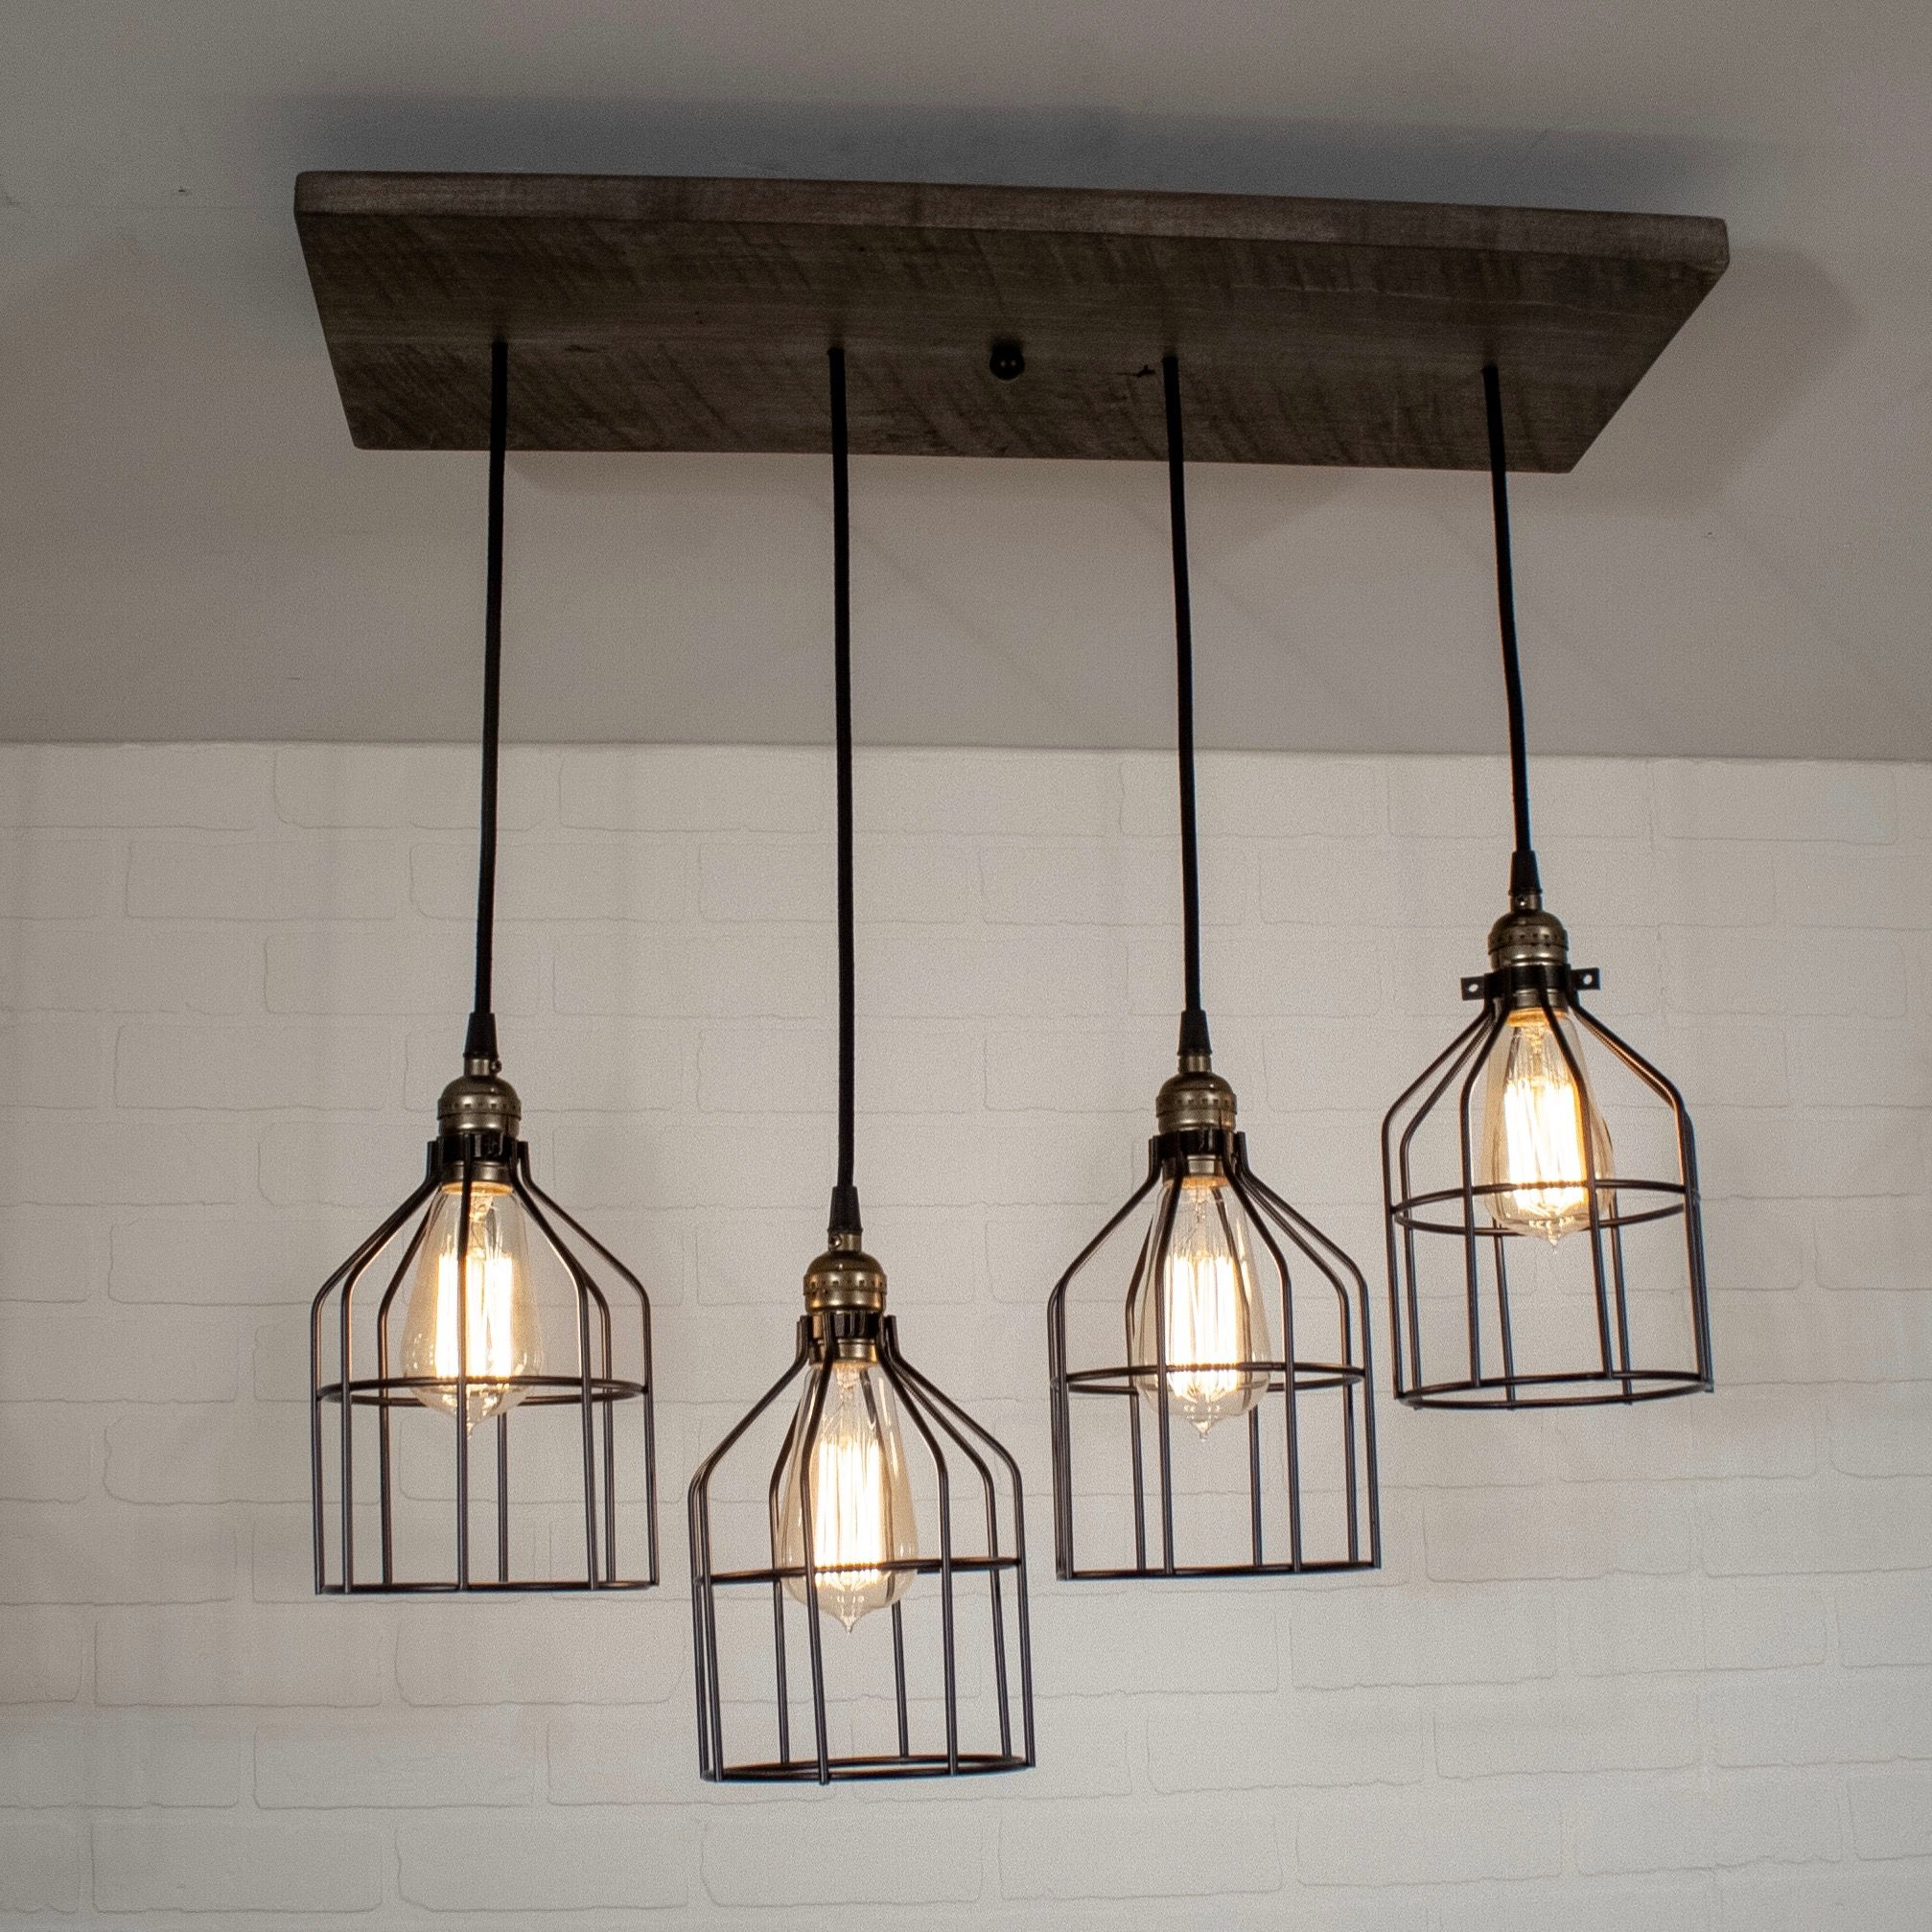 Wood Chandelier Lighting Rustic Kitchen Island Light Featuring 4